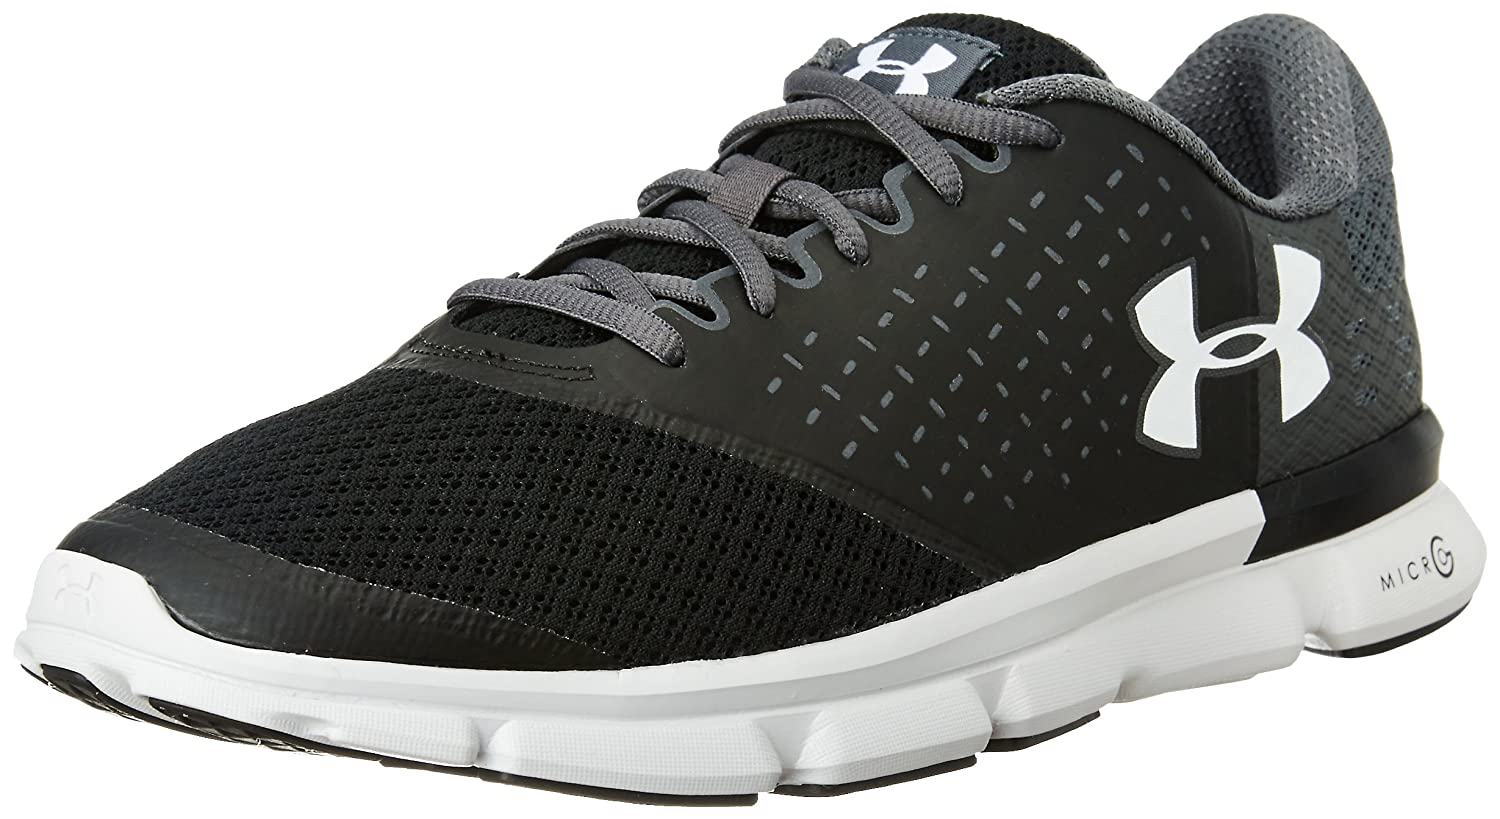 Under Armour Men's Ua Micro G Speed Swift 2 Running Shoes, BTN/Ubl/WHT, M  US: Amazon.co.uk: Shoes & Bags